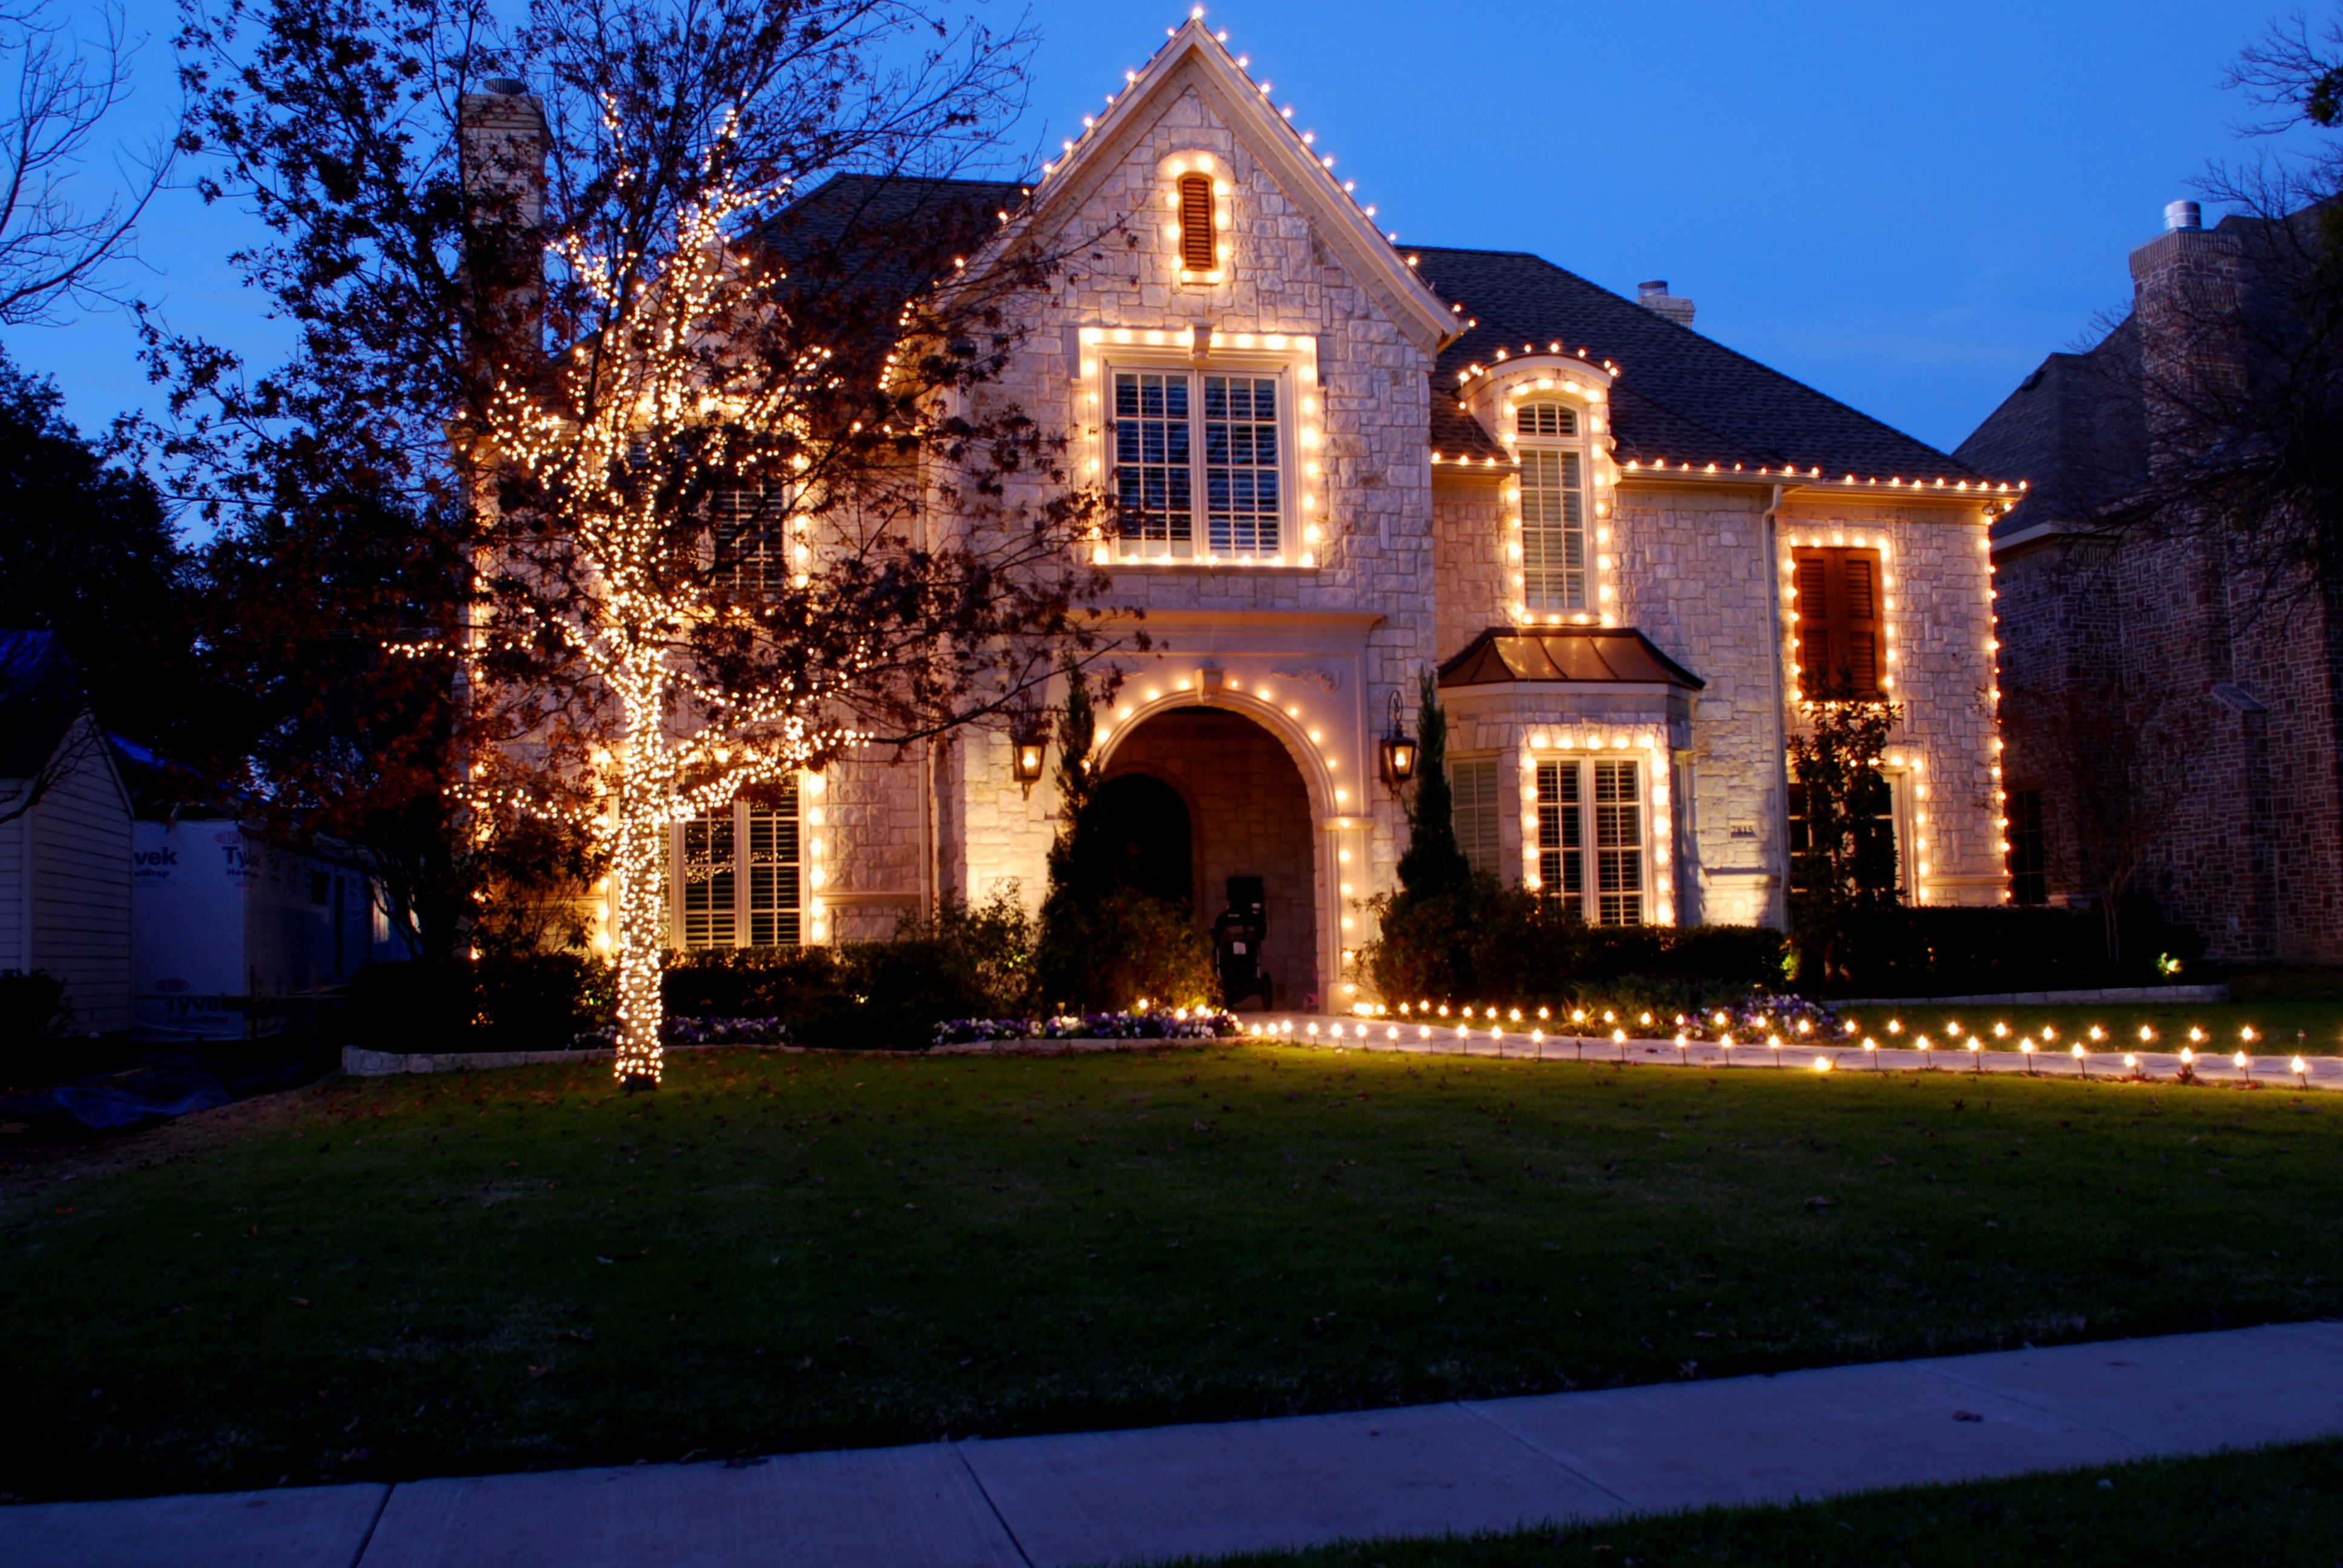 outside christmas lighting ideas. Outdoor Christmas Lights Ideas For Decorating The Roof Include Outlining House With And Hanging Outside Lighting N